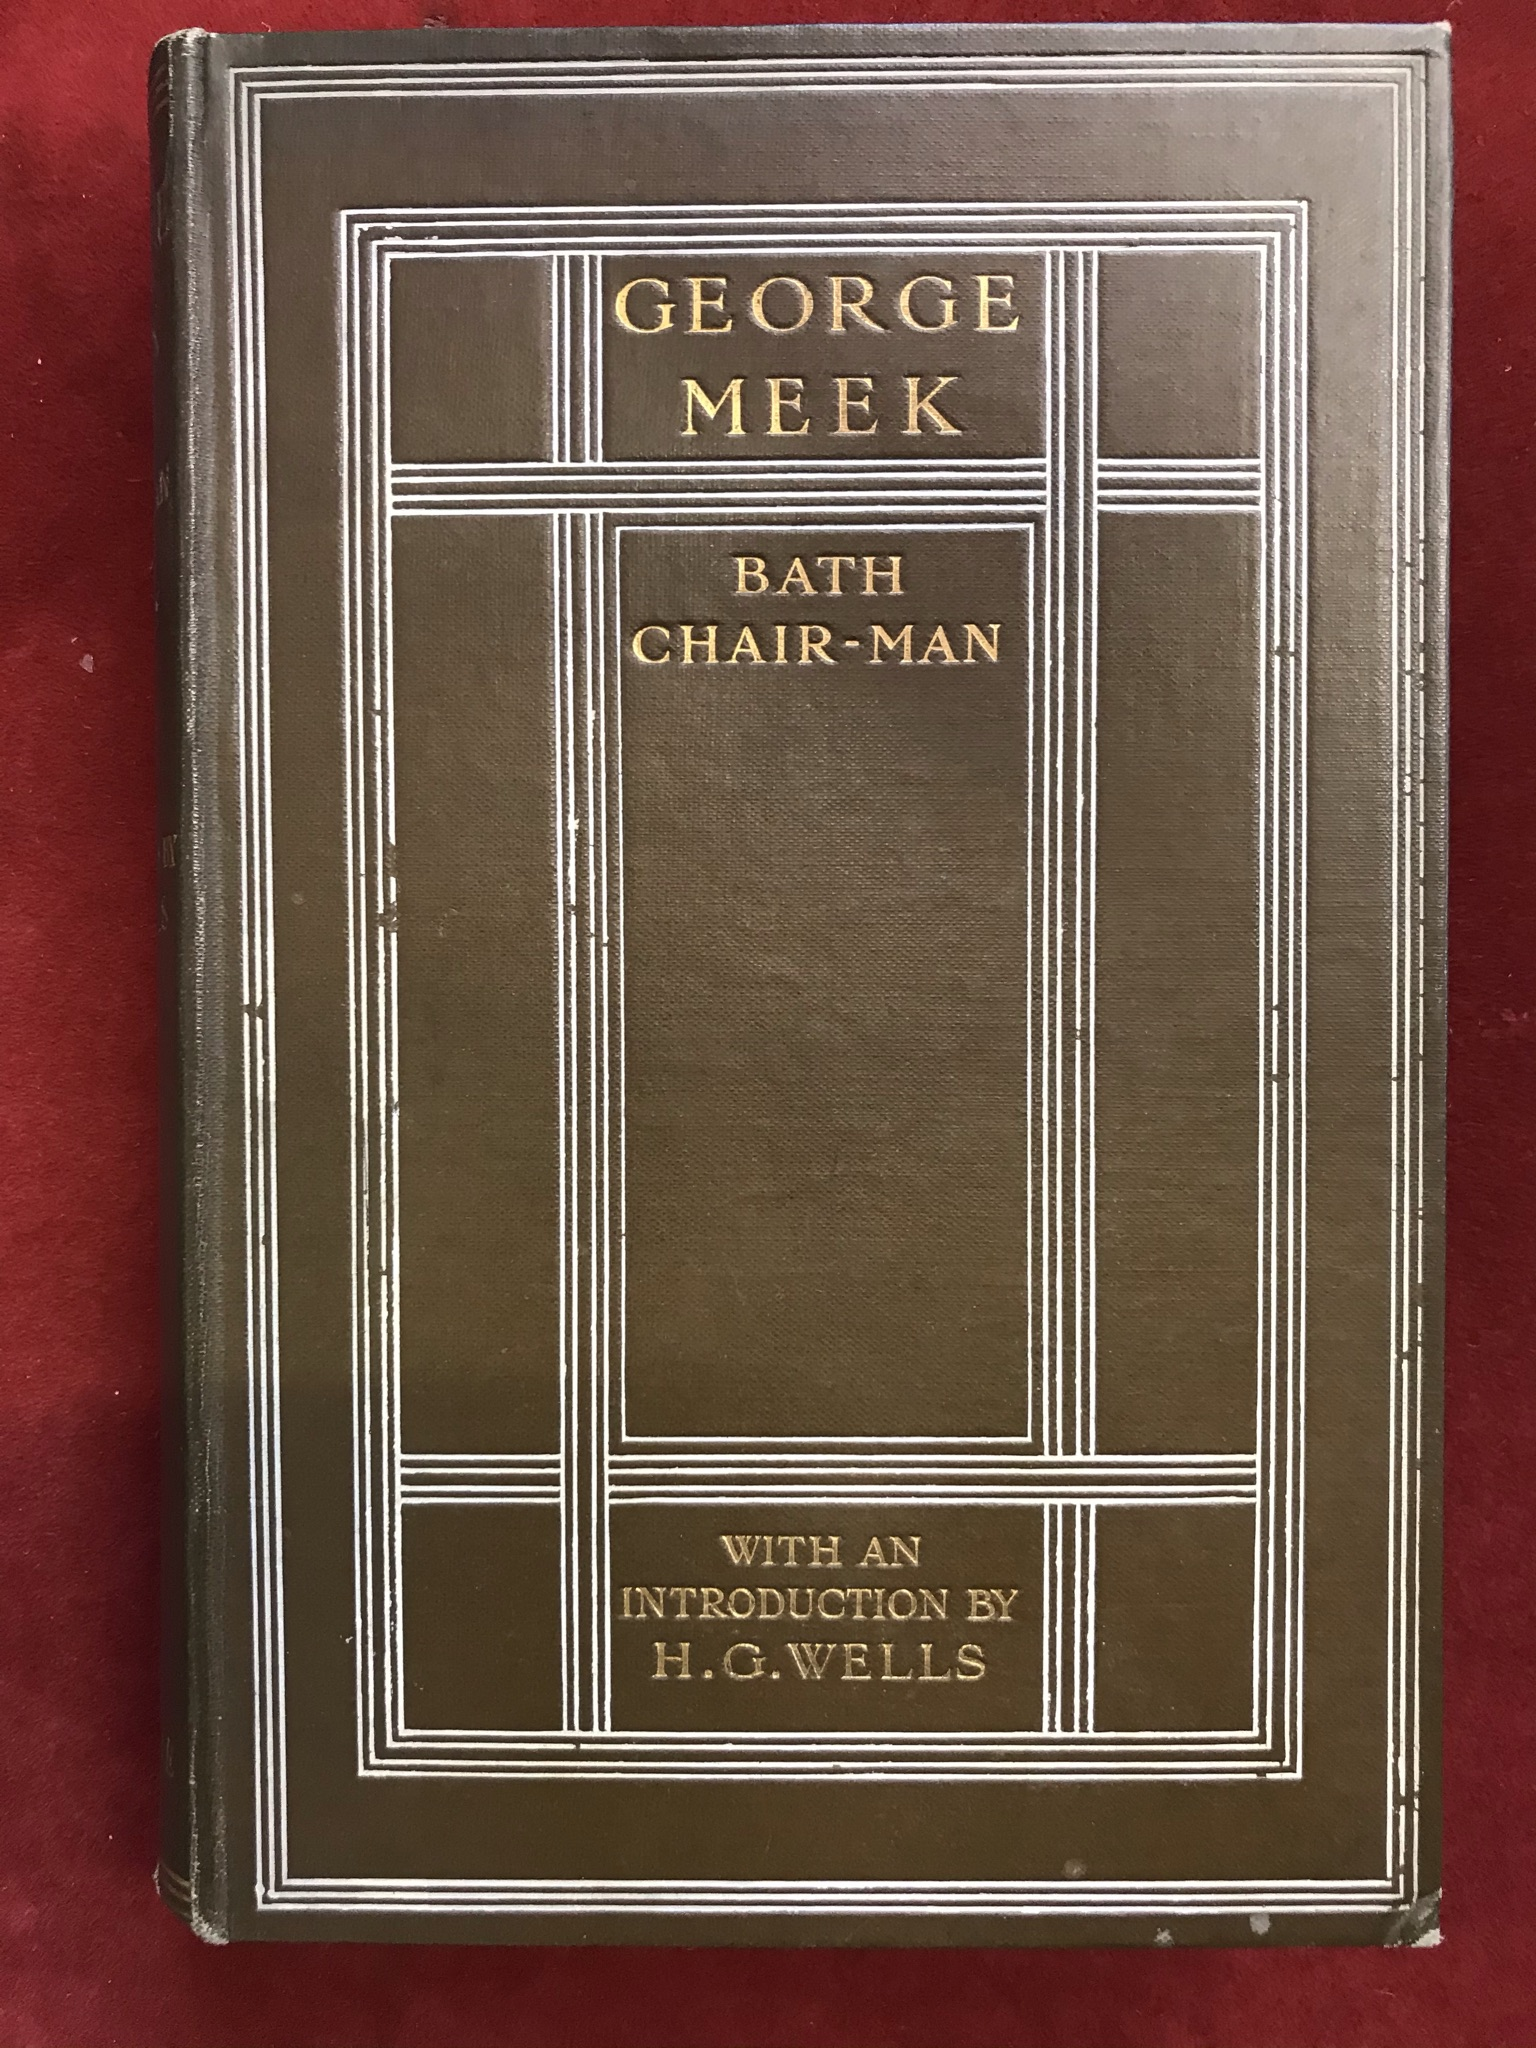 Bath Chair-Manby George Meek with an introduction by H. G.Wells1910 no D/W